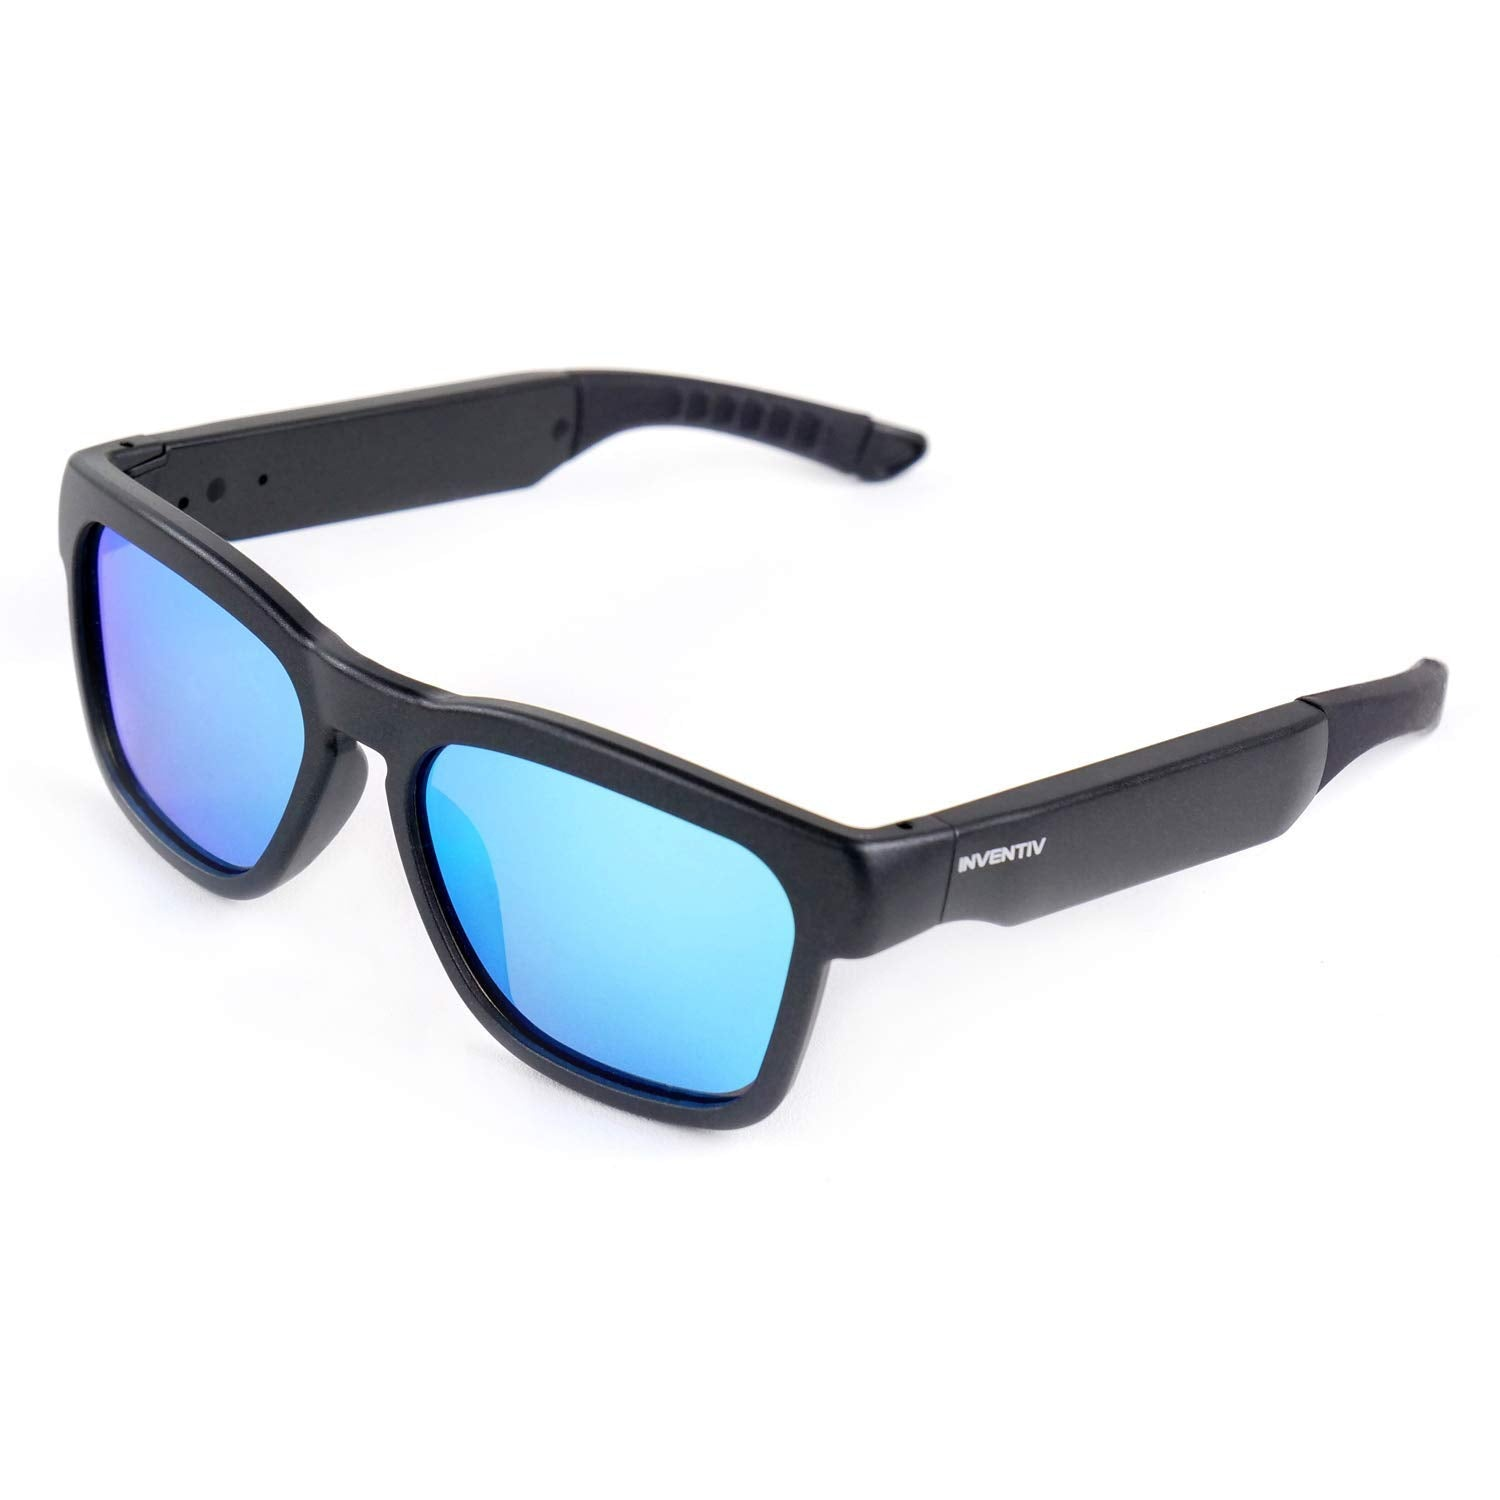 cdf036308e Inventiv Wireless Bluetooth Sunglasses - Hands free phone & sound system  anywhere you go.